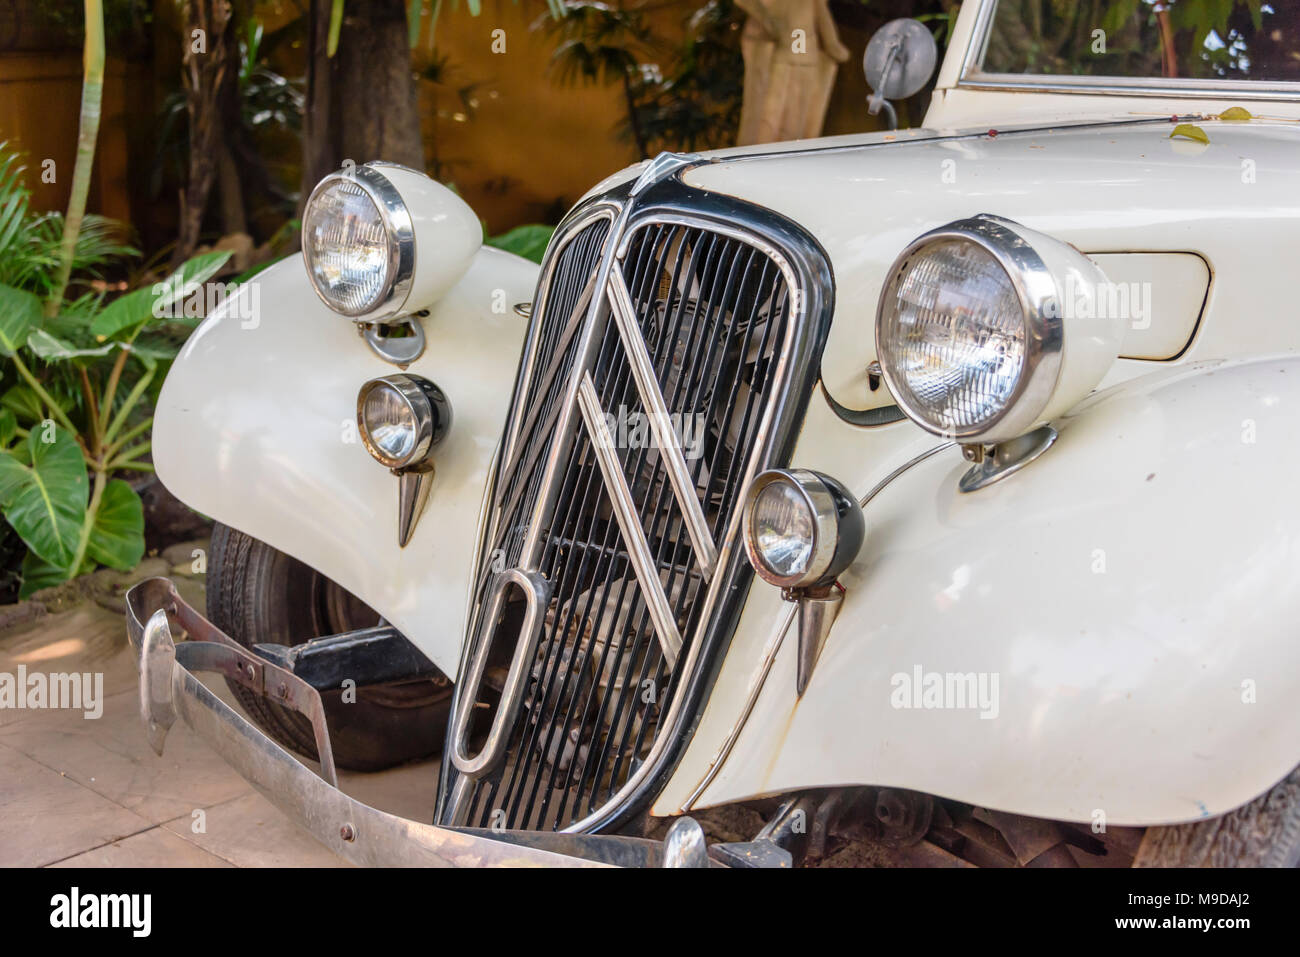 White 1934 Citroen Traction Avant, Siem Reap, Cambodia - Stock Image